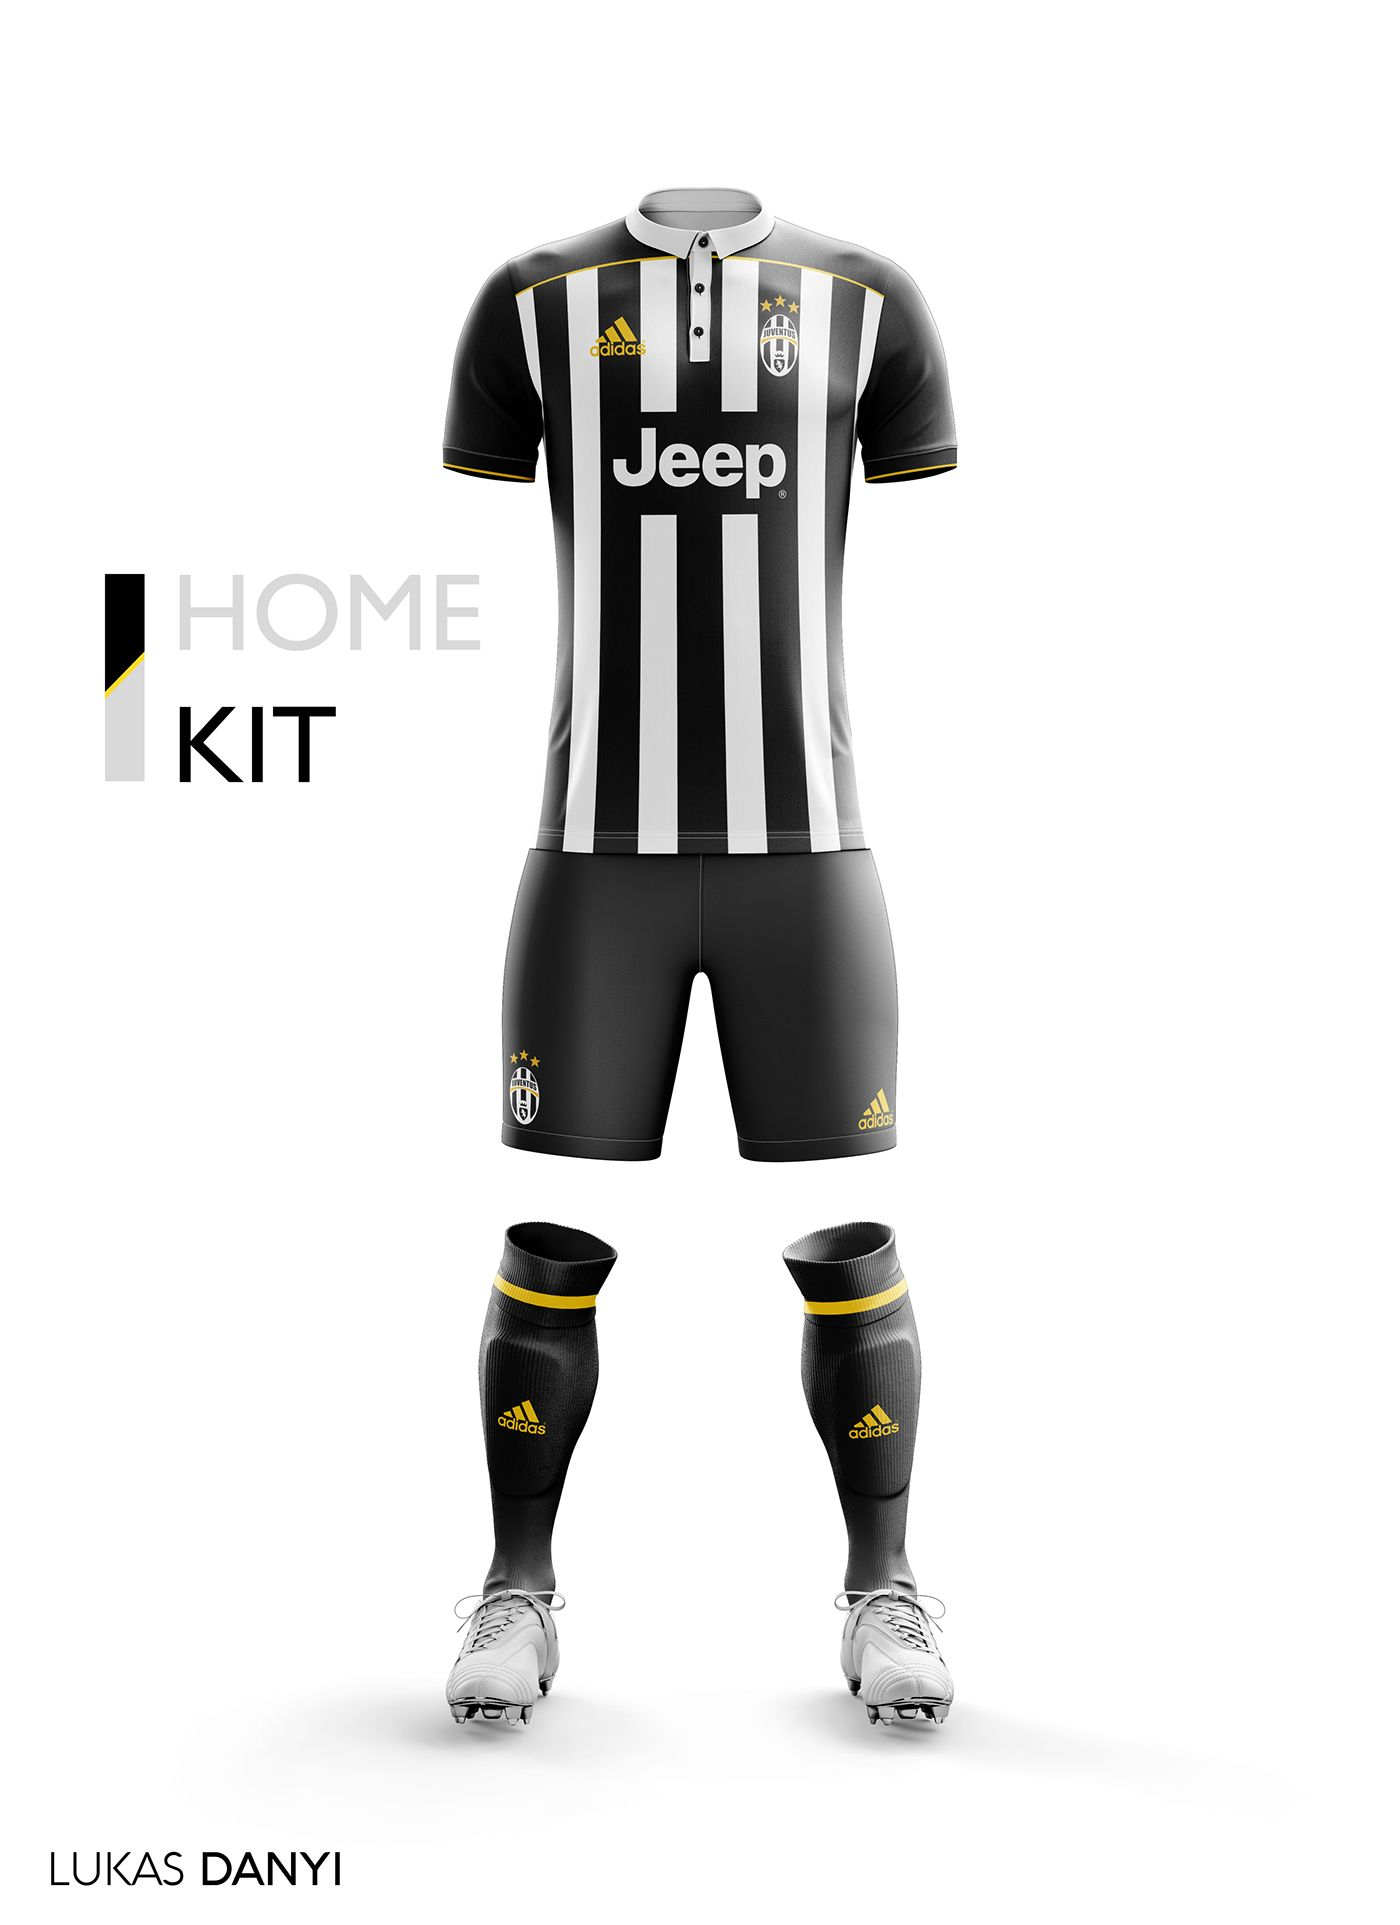 a7d7825609 I designed football kits for Juventus FC for the upcoming season 17 ...